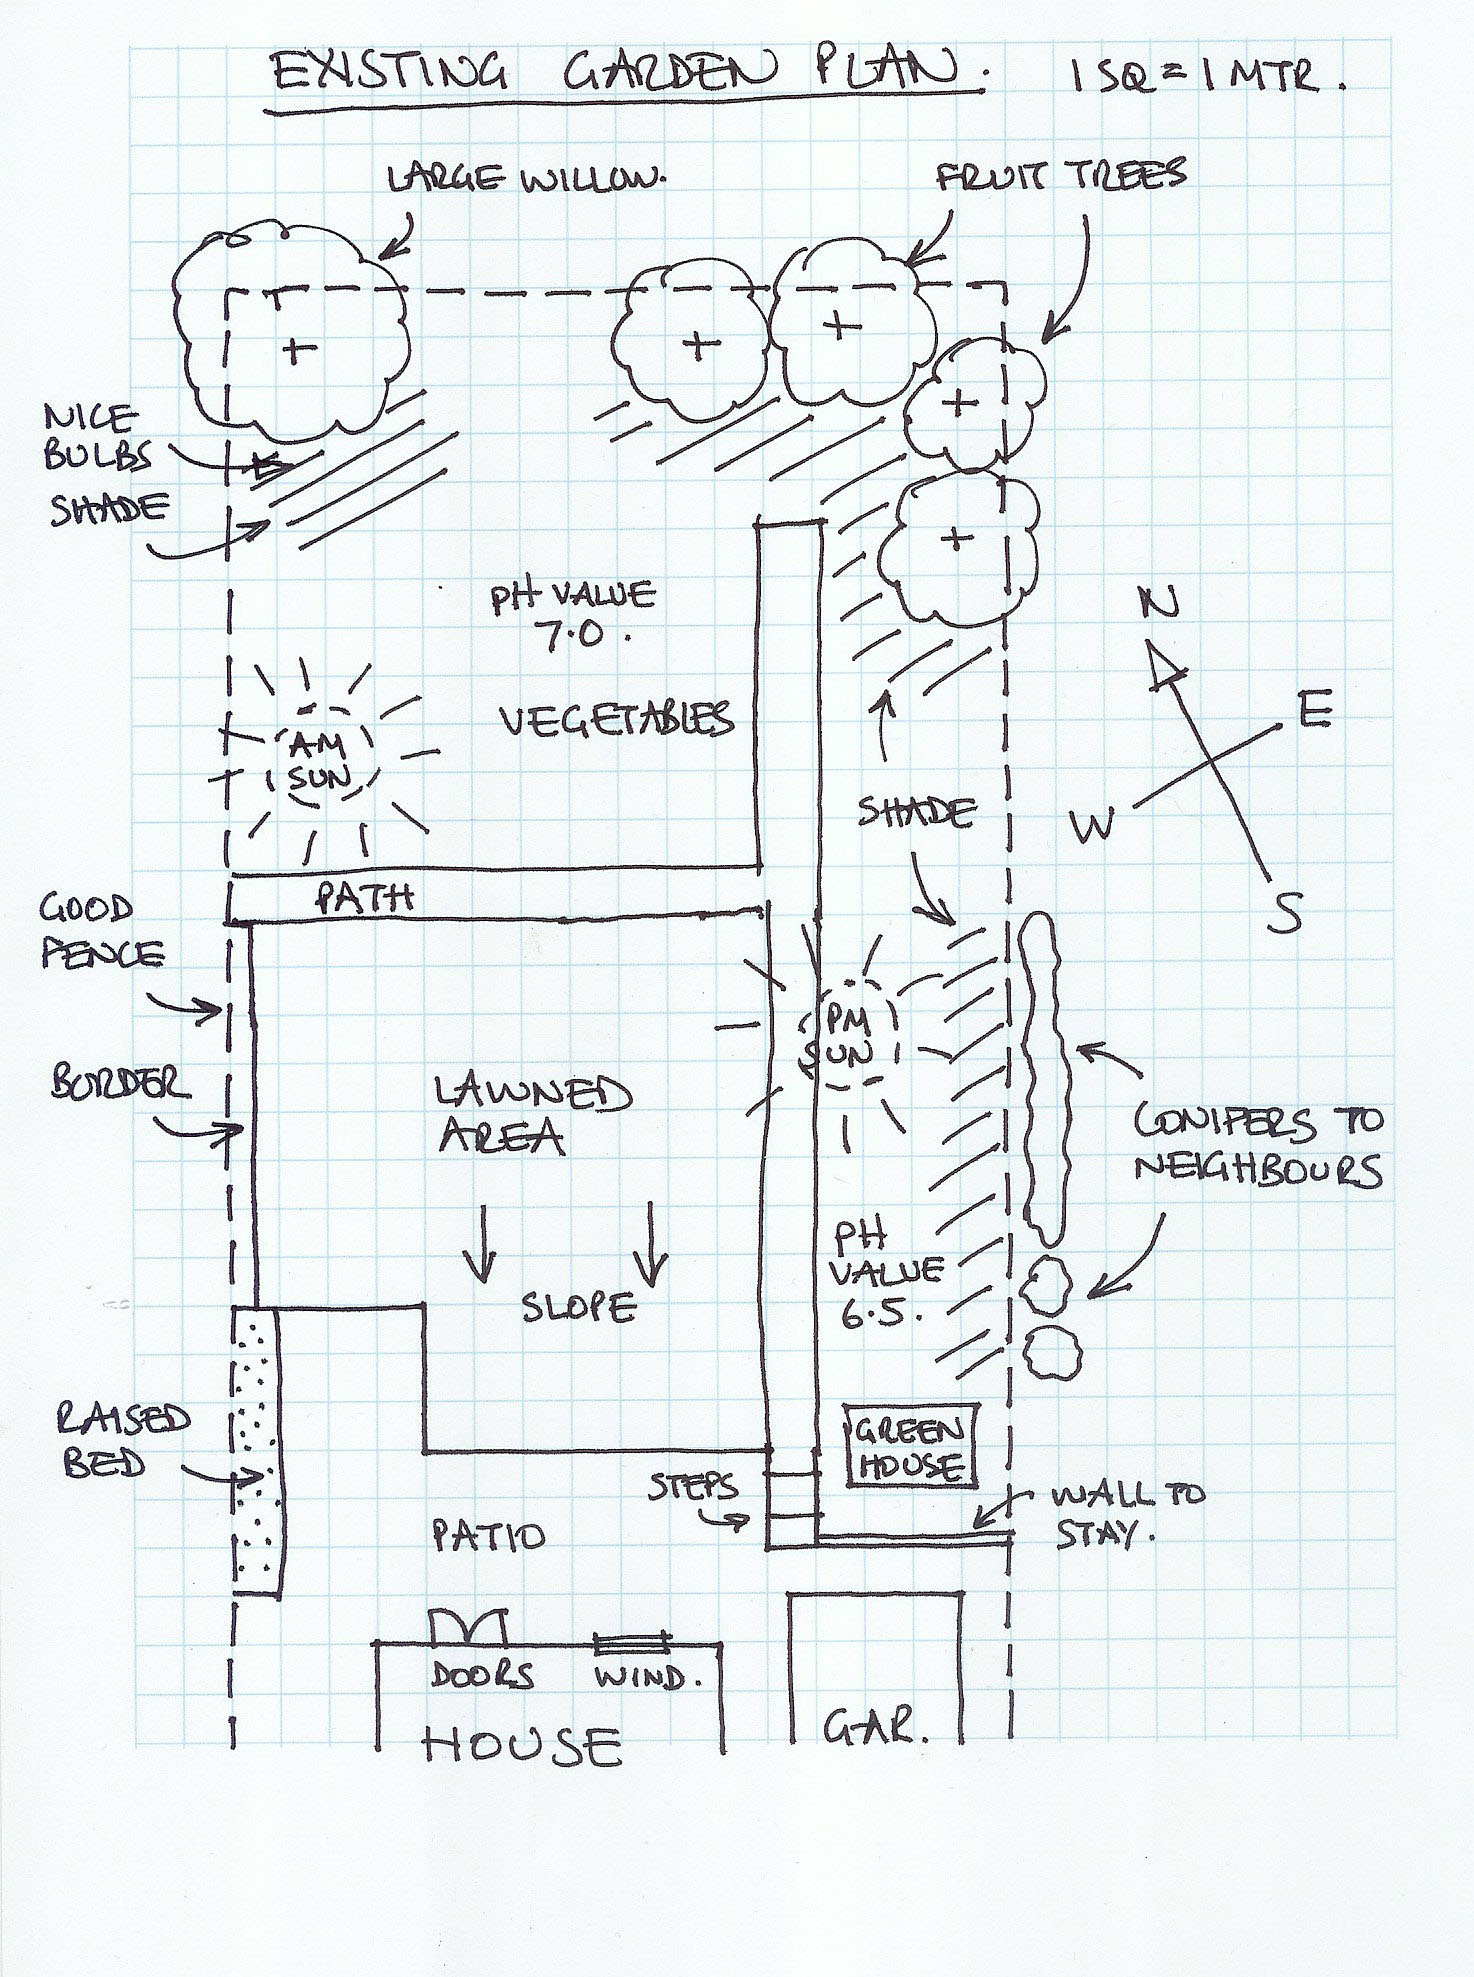 Draw Up House Plans Best Of Plans Drawing at Getdrawings